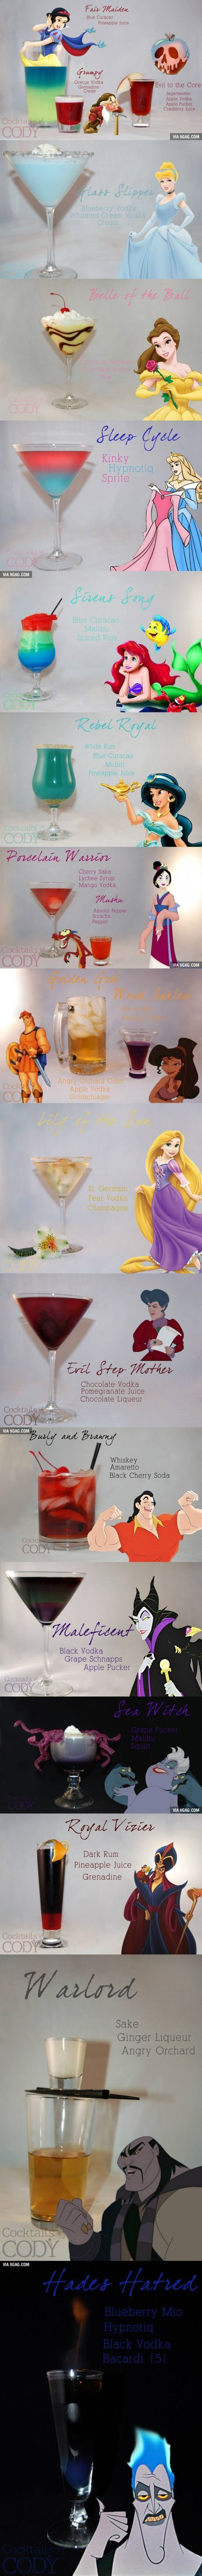 29 Disney Themed Cocktails You Will Want To Try - Interesting concept, could potentially do something with Nintendo characters on this same idea.: